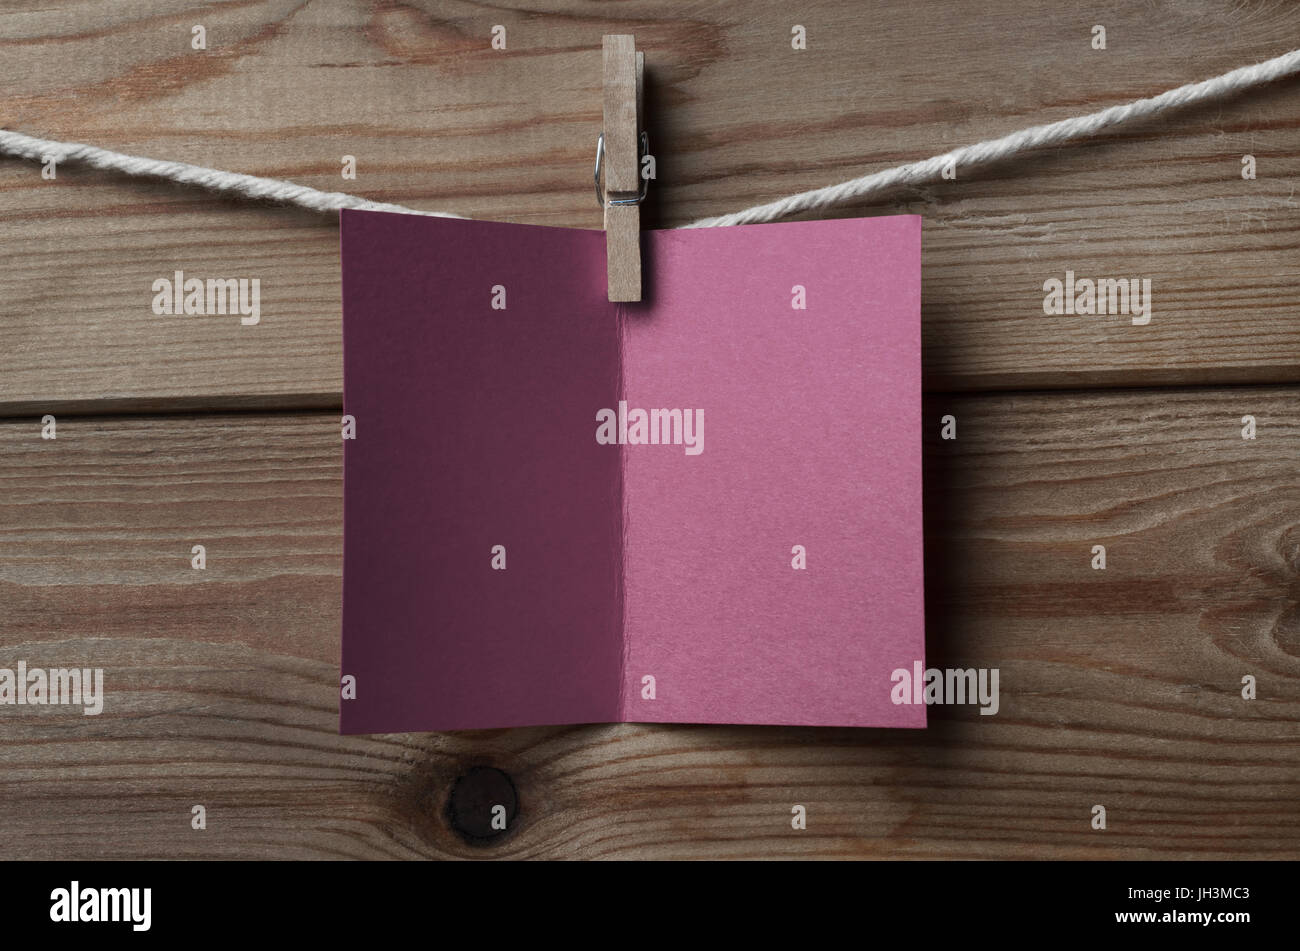 An opened, blank plum greeting or Christmas card, pegged on to string against wood plank background - Stock Image